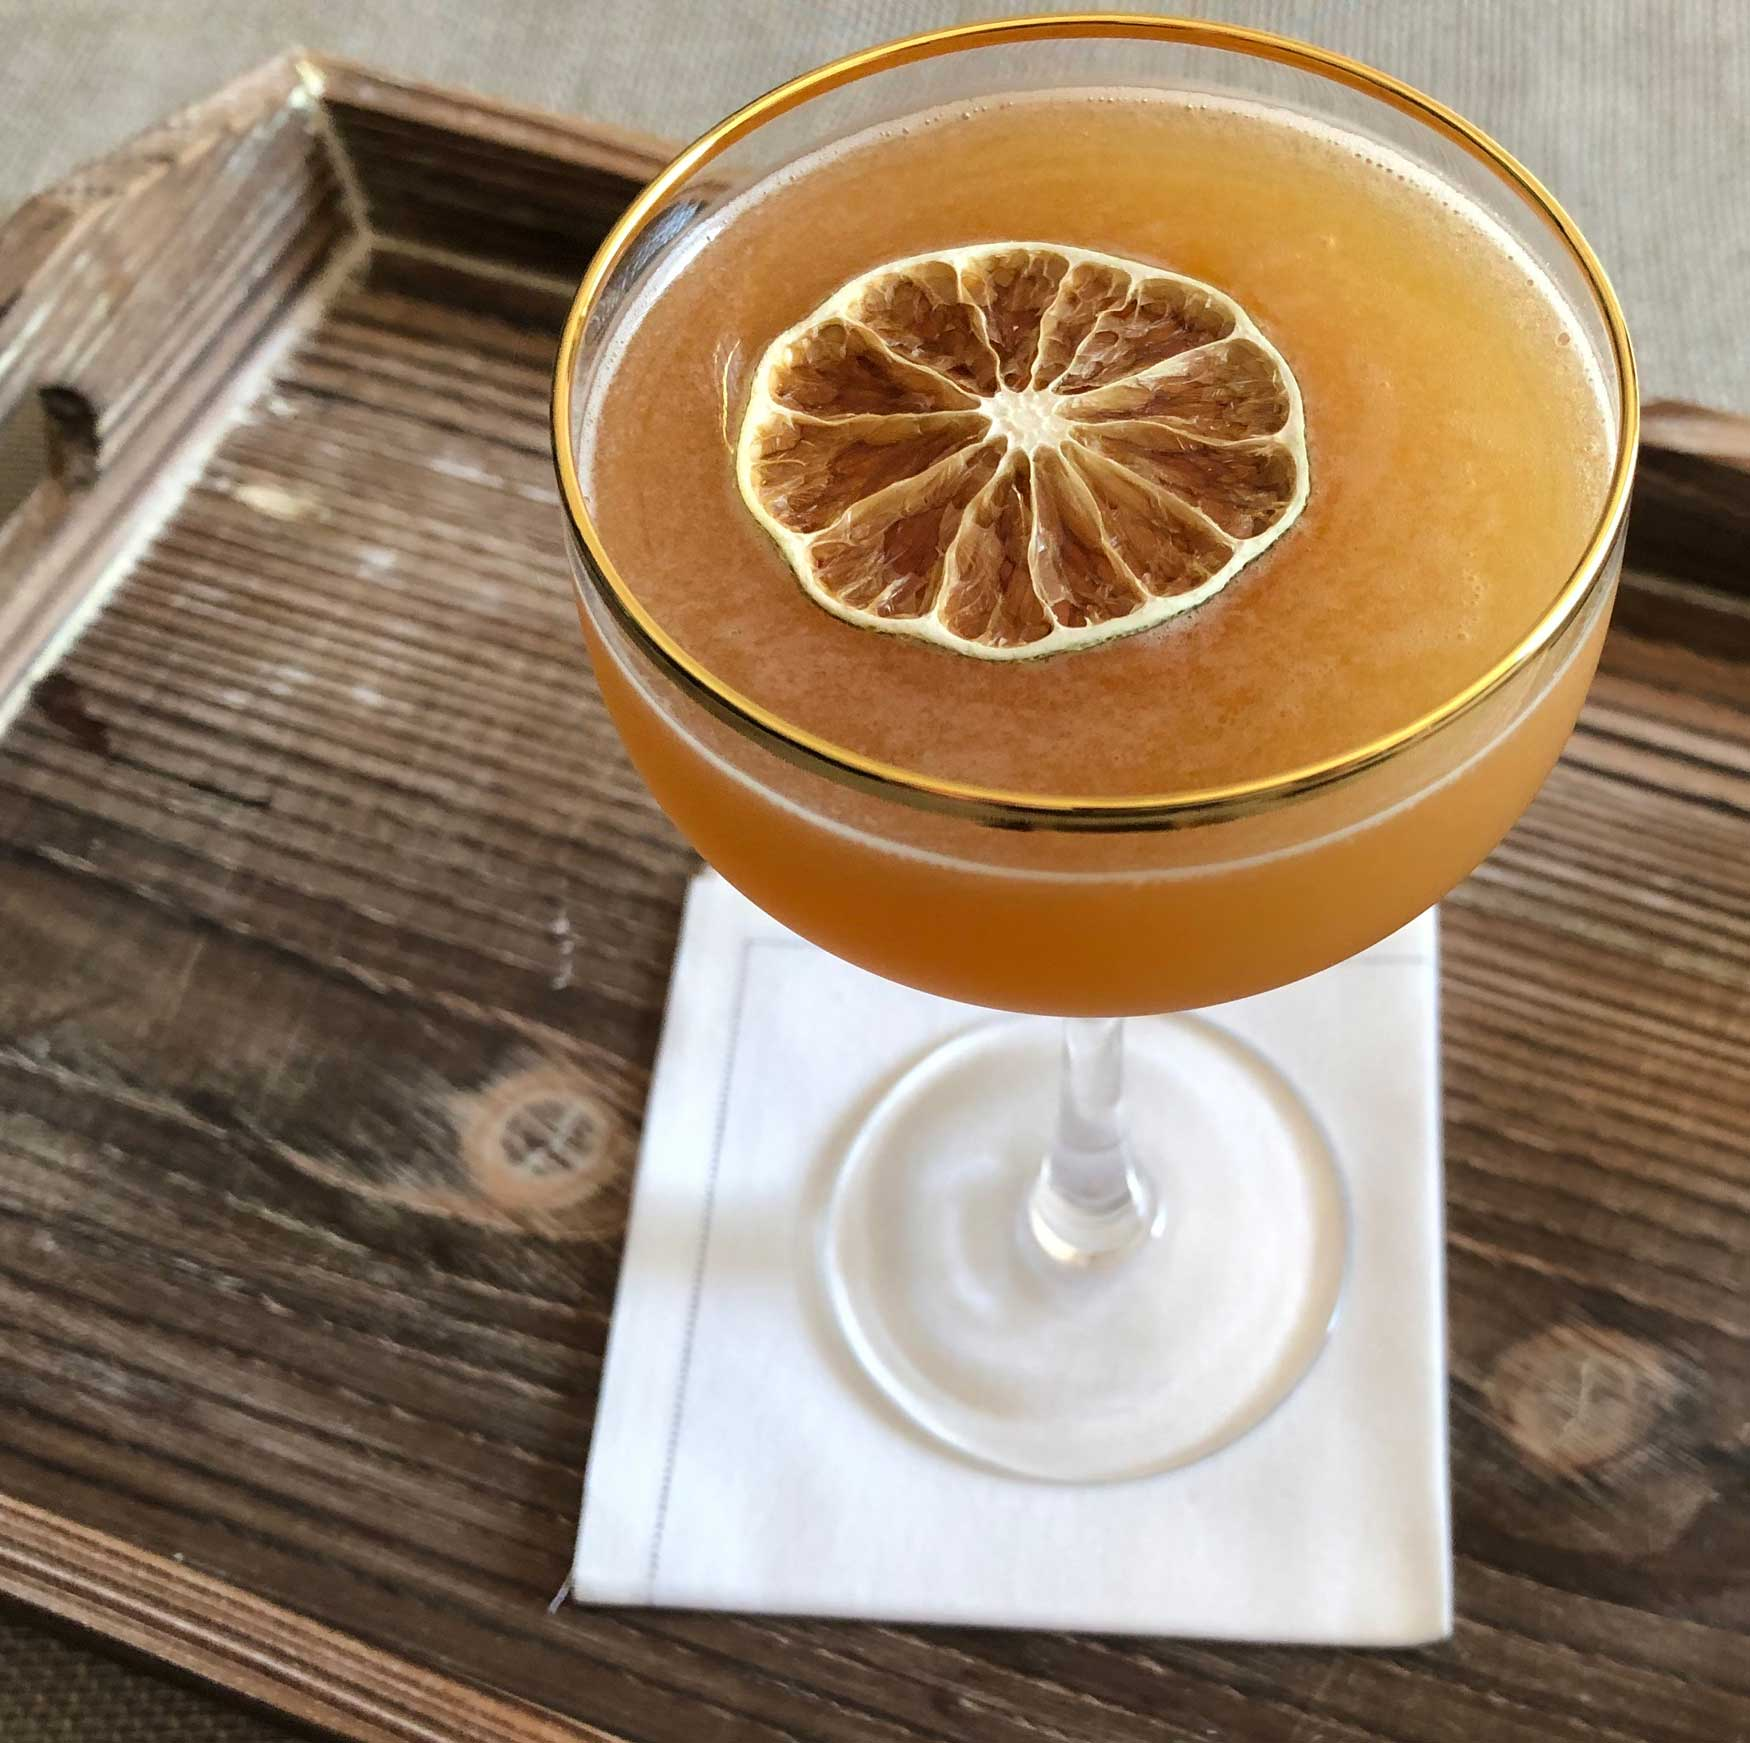 An example of the Navy Cross, the mixed drink (cocktail), by Alexandra Bookless, The Passenger, Washington, DC, featuring Smith & Cross Traditional Jamaica Rum, Cruzan Blackstrap Rum, John D. Taylor's Velvet Falernum, pineapple juice, lime juice, and St. Elizabeth Allspice Dram; photo by Lee Edwards